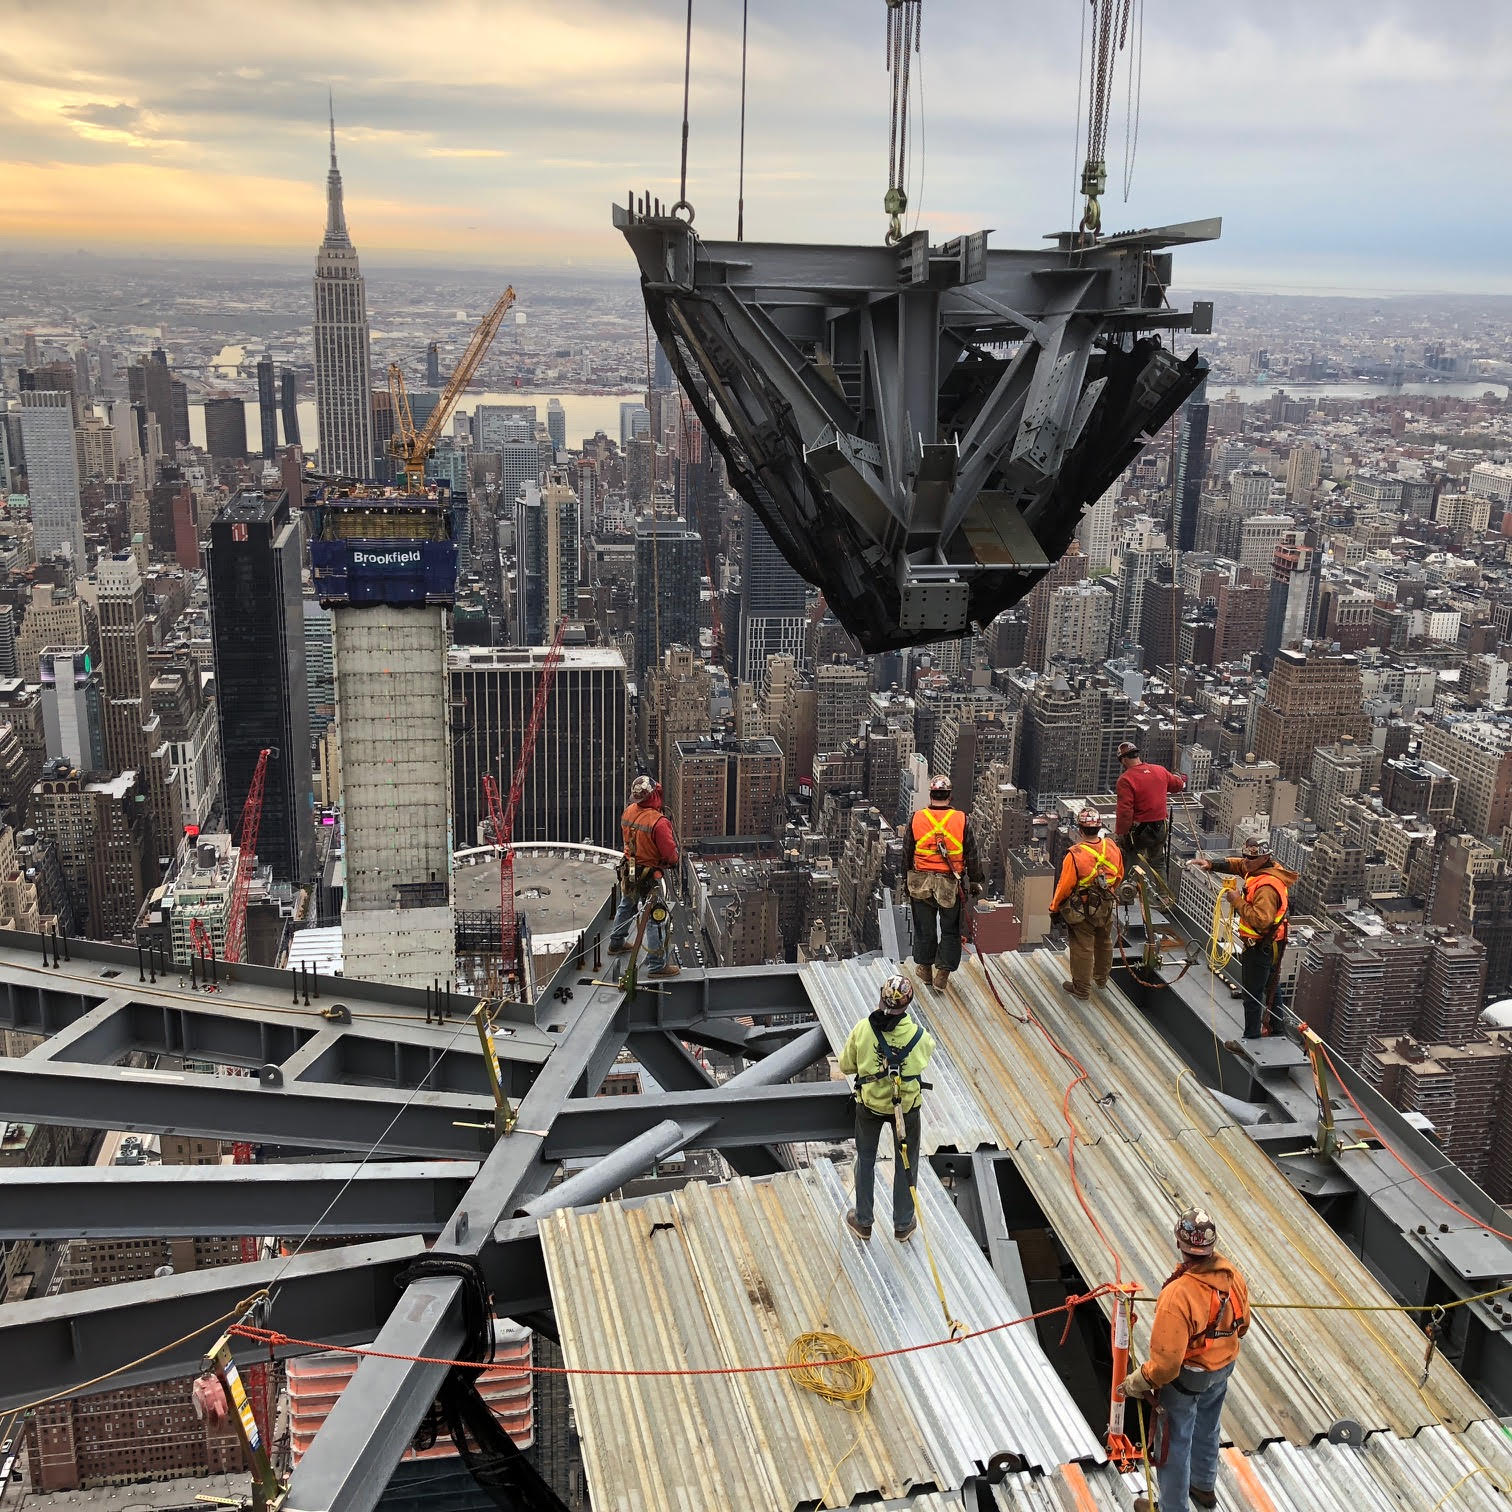 The Observation Deck is installed at 30 Hudson Yards